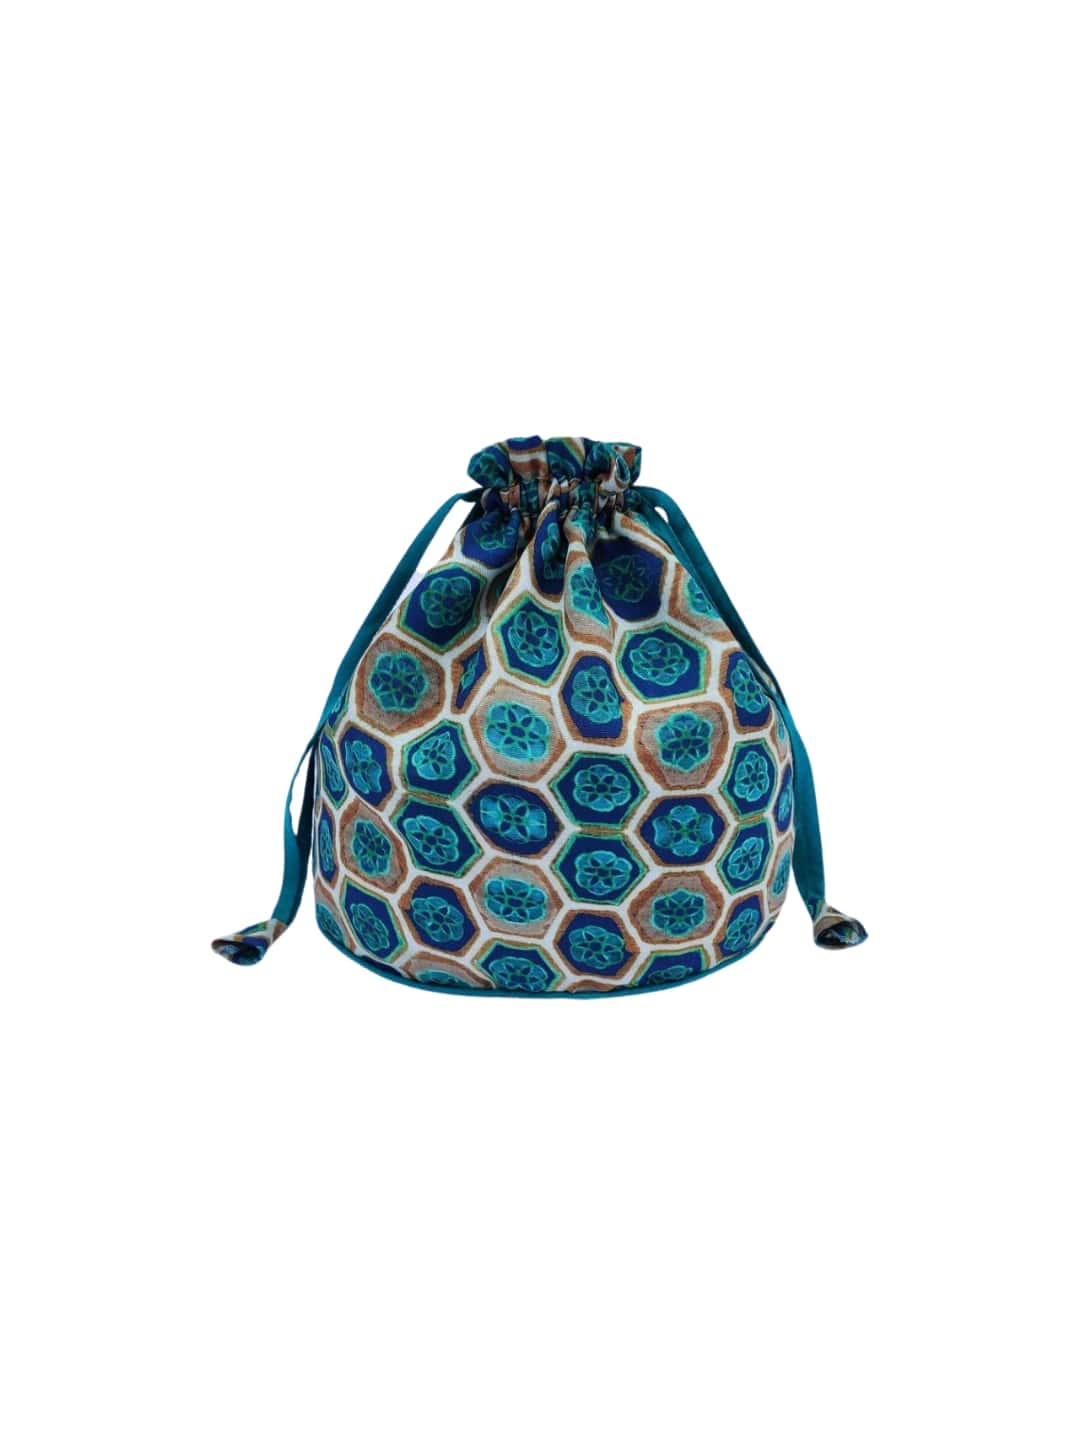 Blue Printed Potli Bag